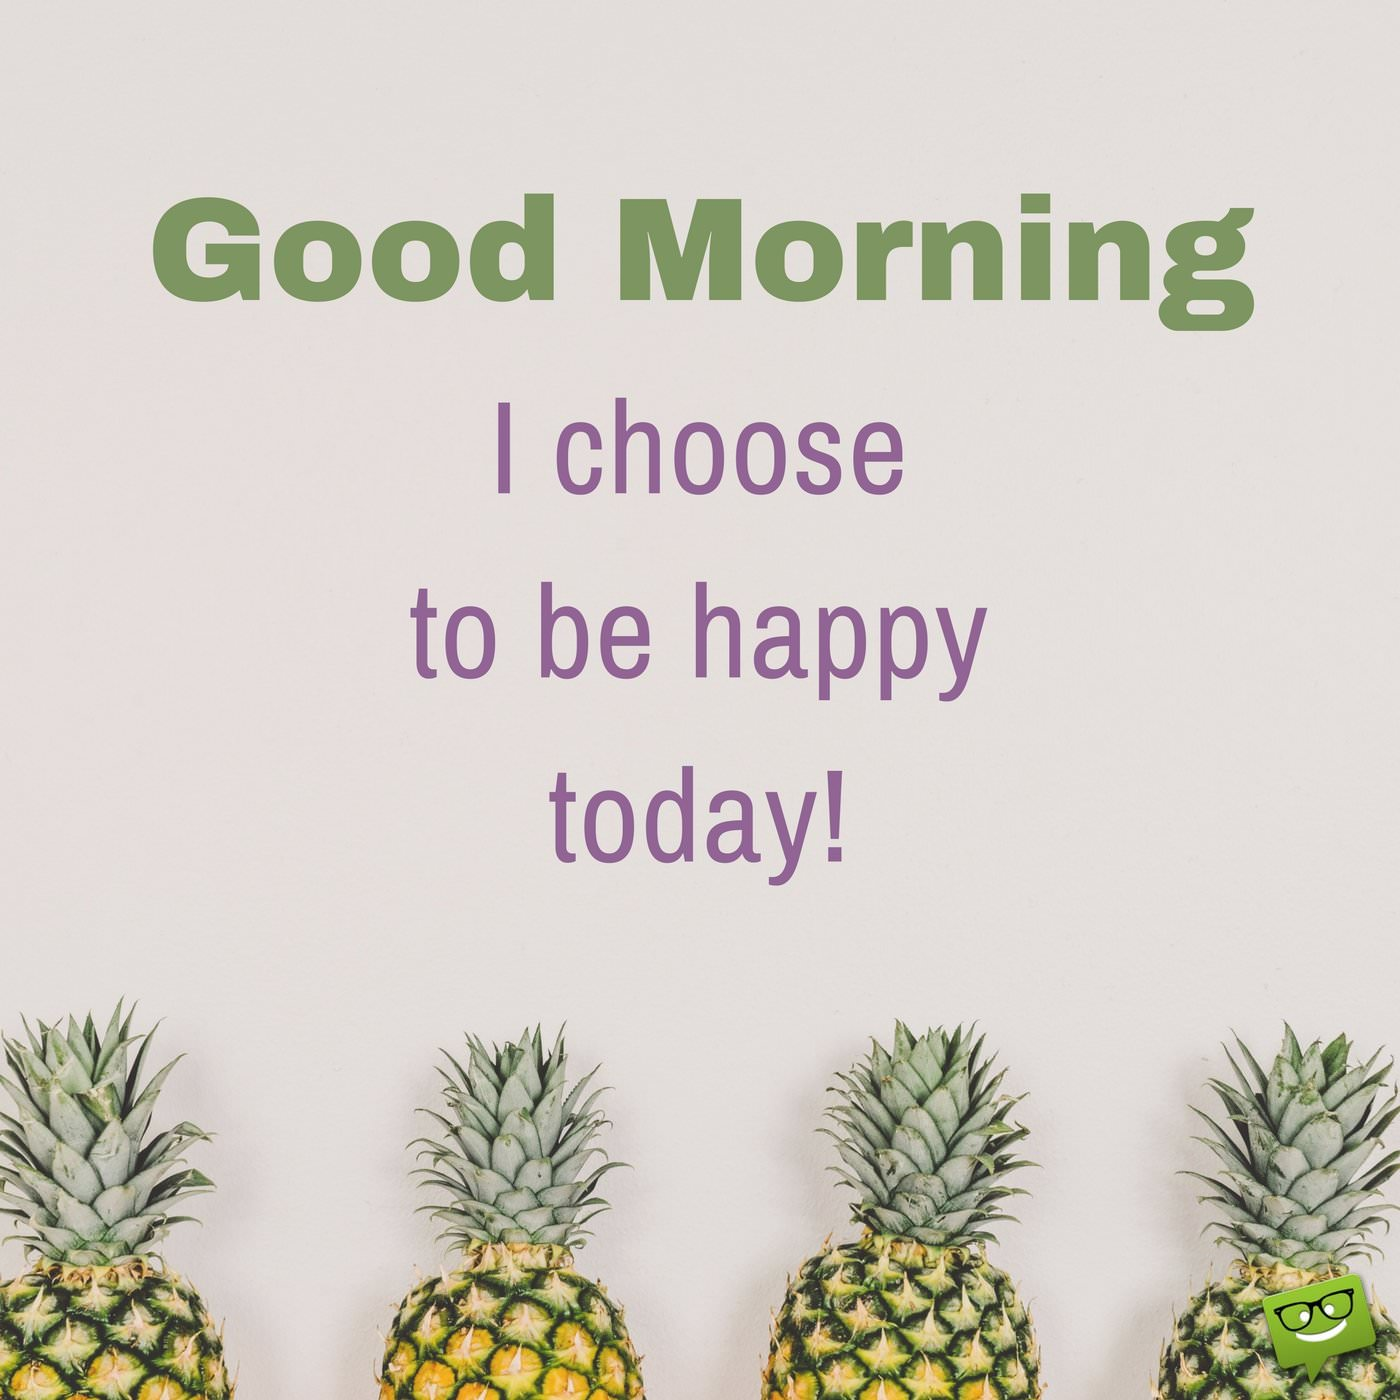 good-morning-positive-quote-on-cute-photo-of-pineapples